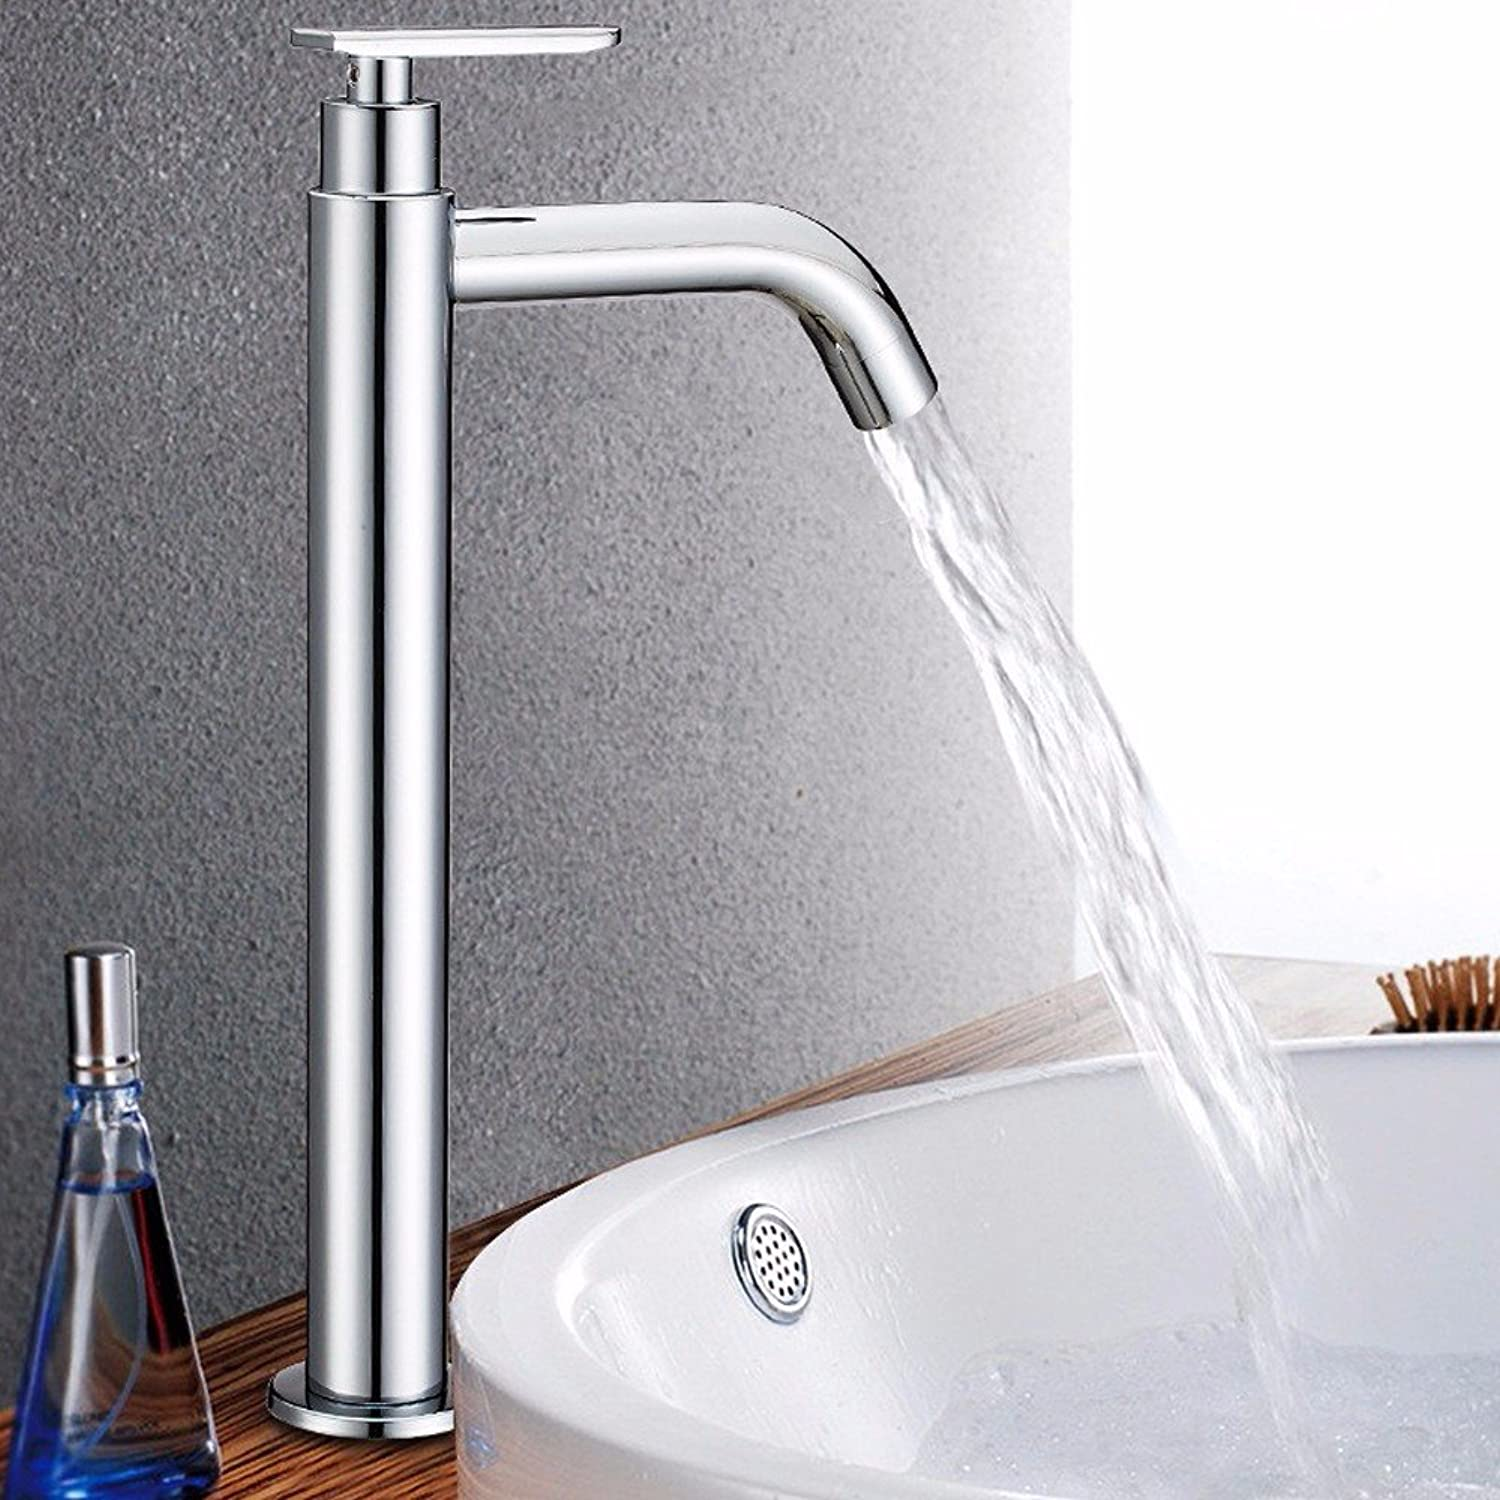 Commercial Single Lever Pull Down Kitchen Sink Faucet Brass Constructed Polished Single Cold Faucet Stainless Steel Single Cold Noodle Faucet Single Hole Kitchen Bathroom Sink